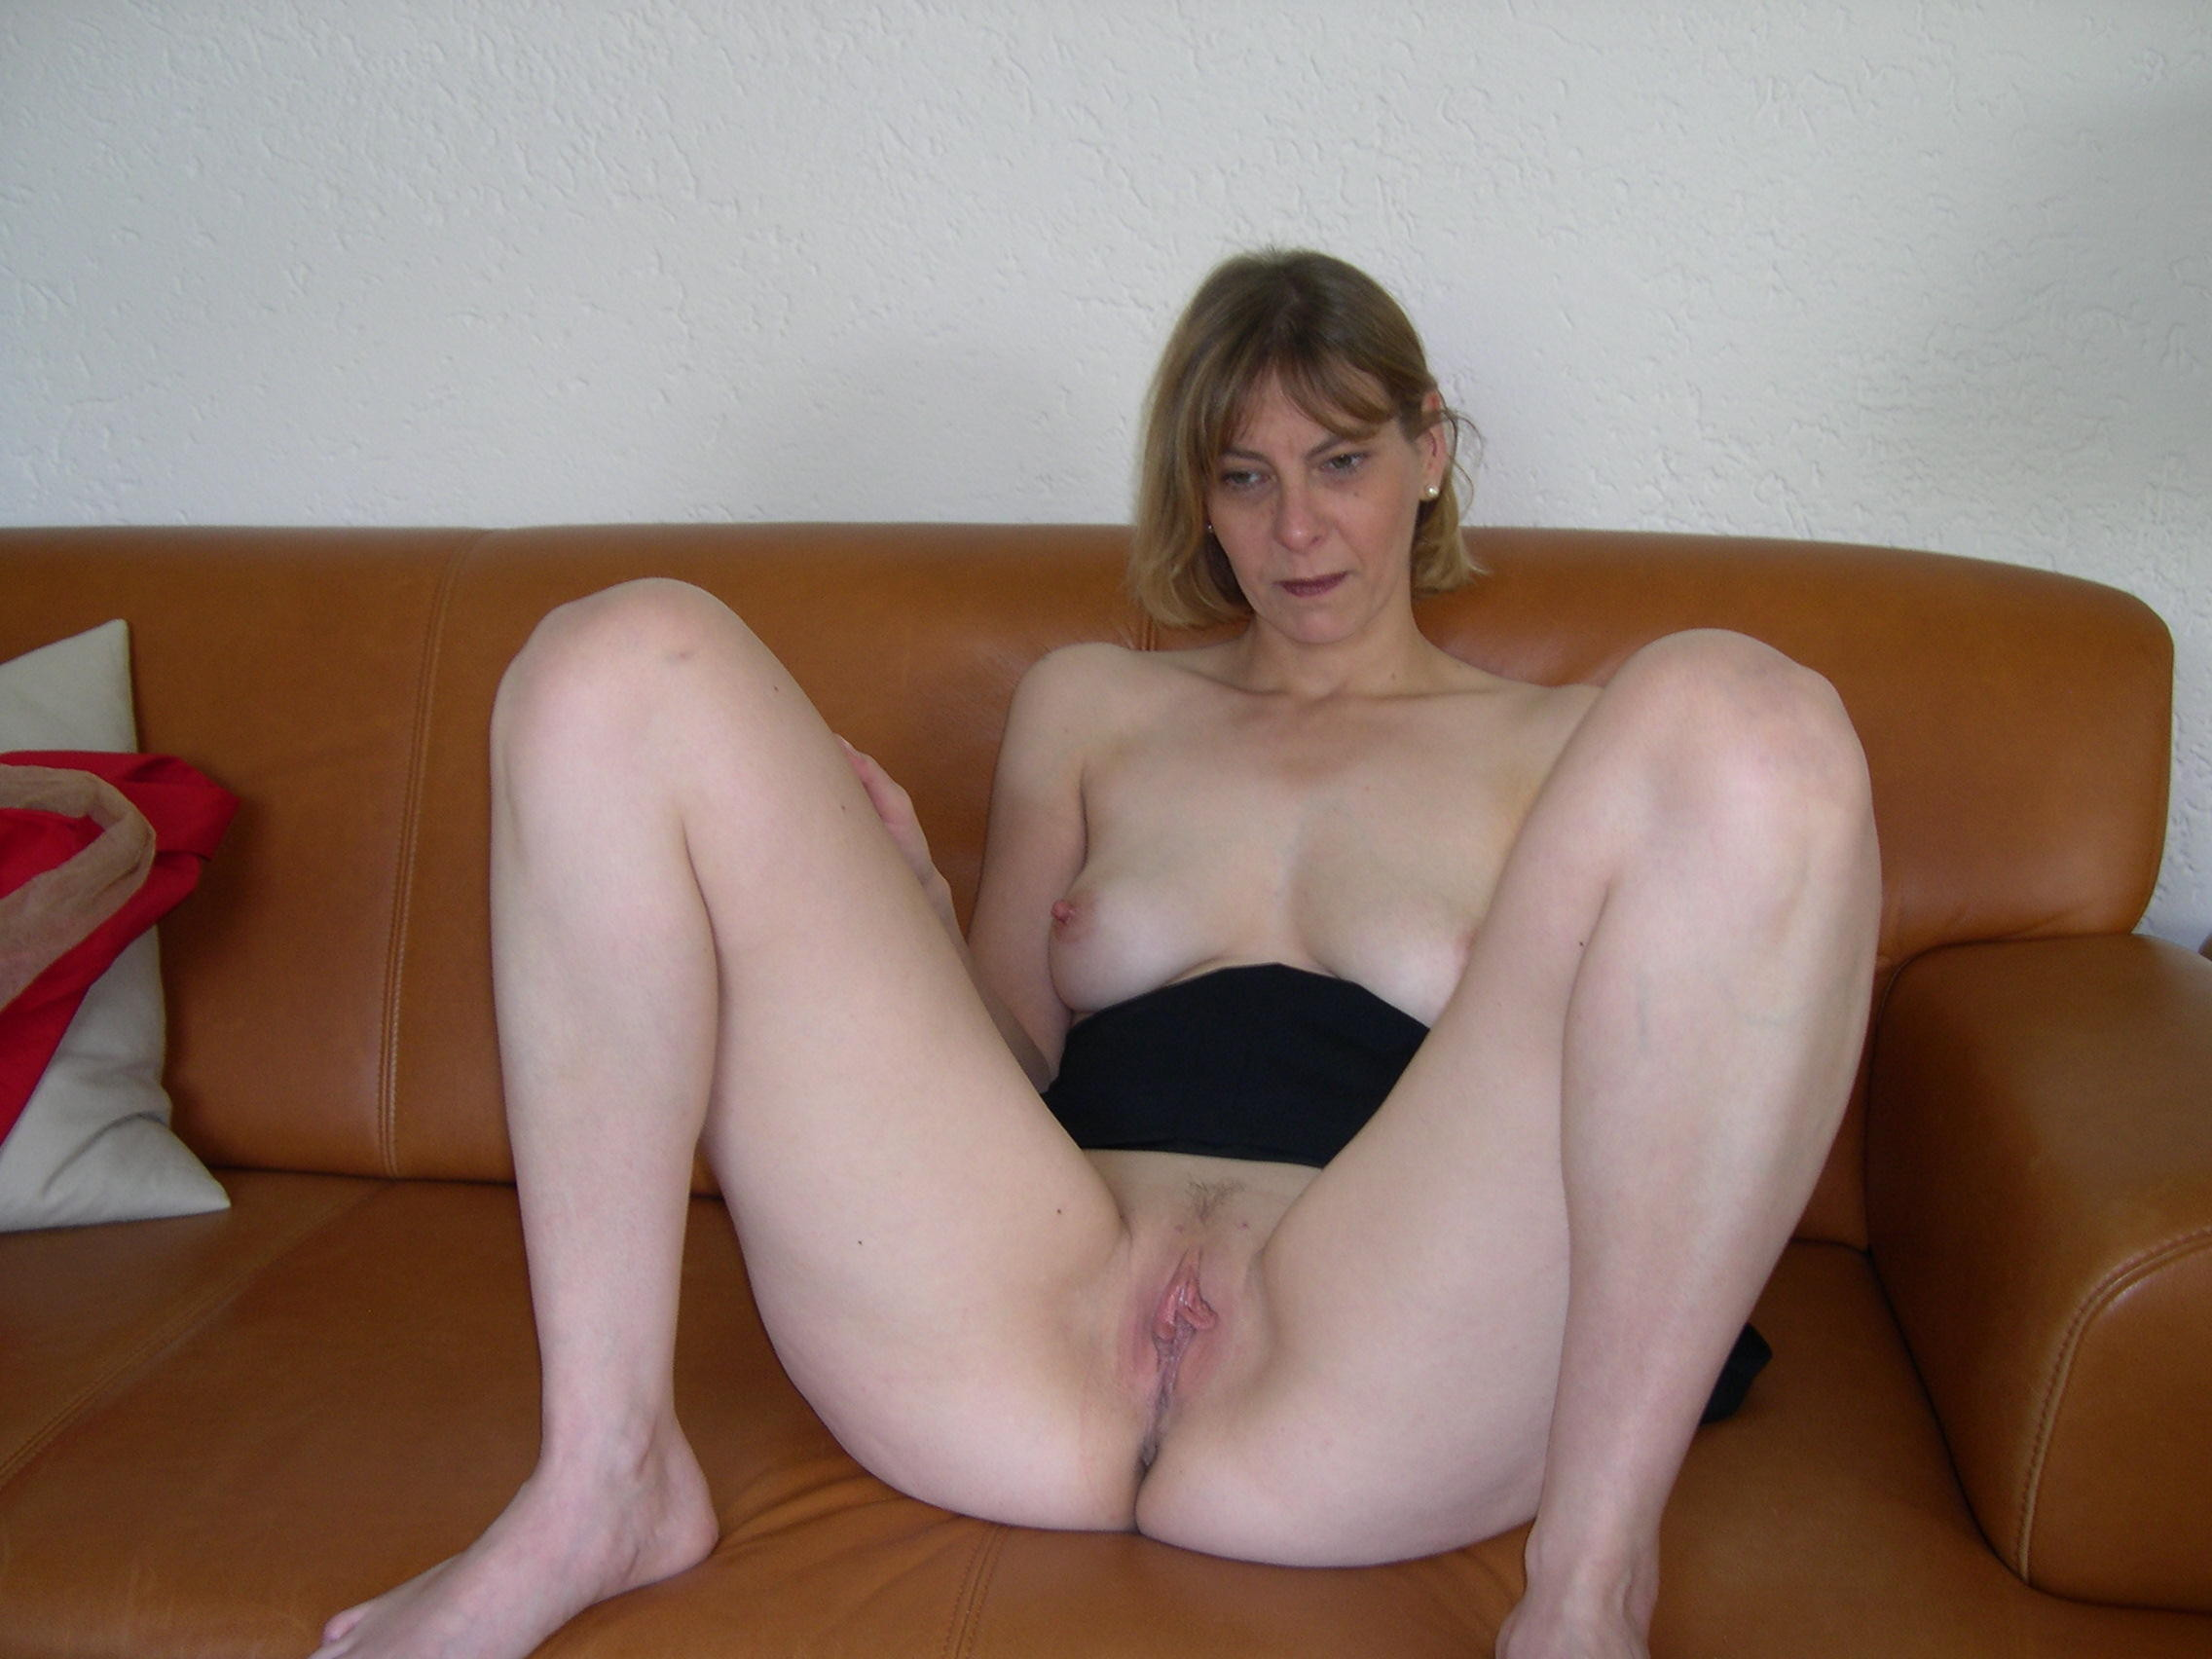 Under 12 nude pictures